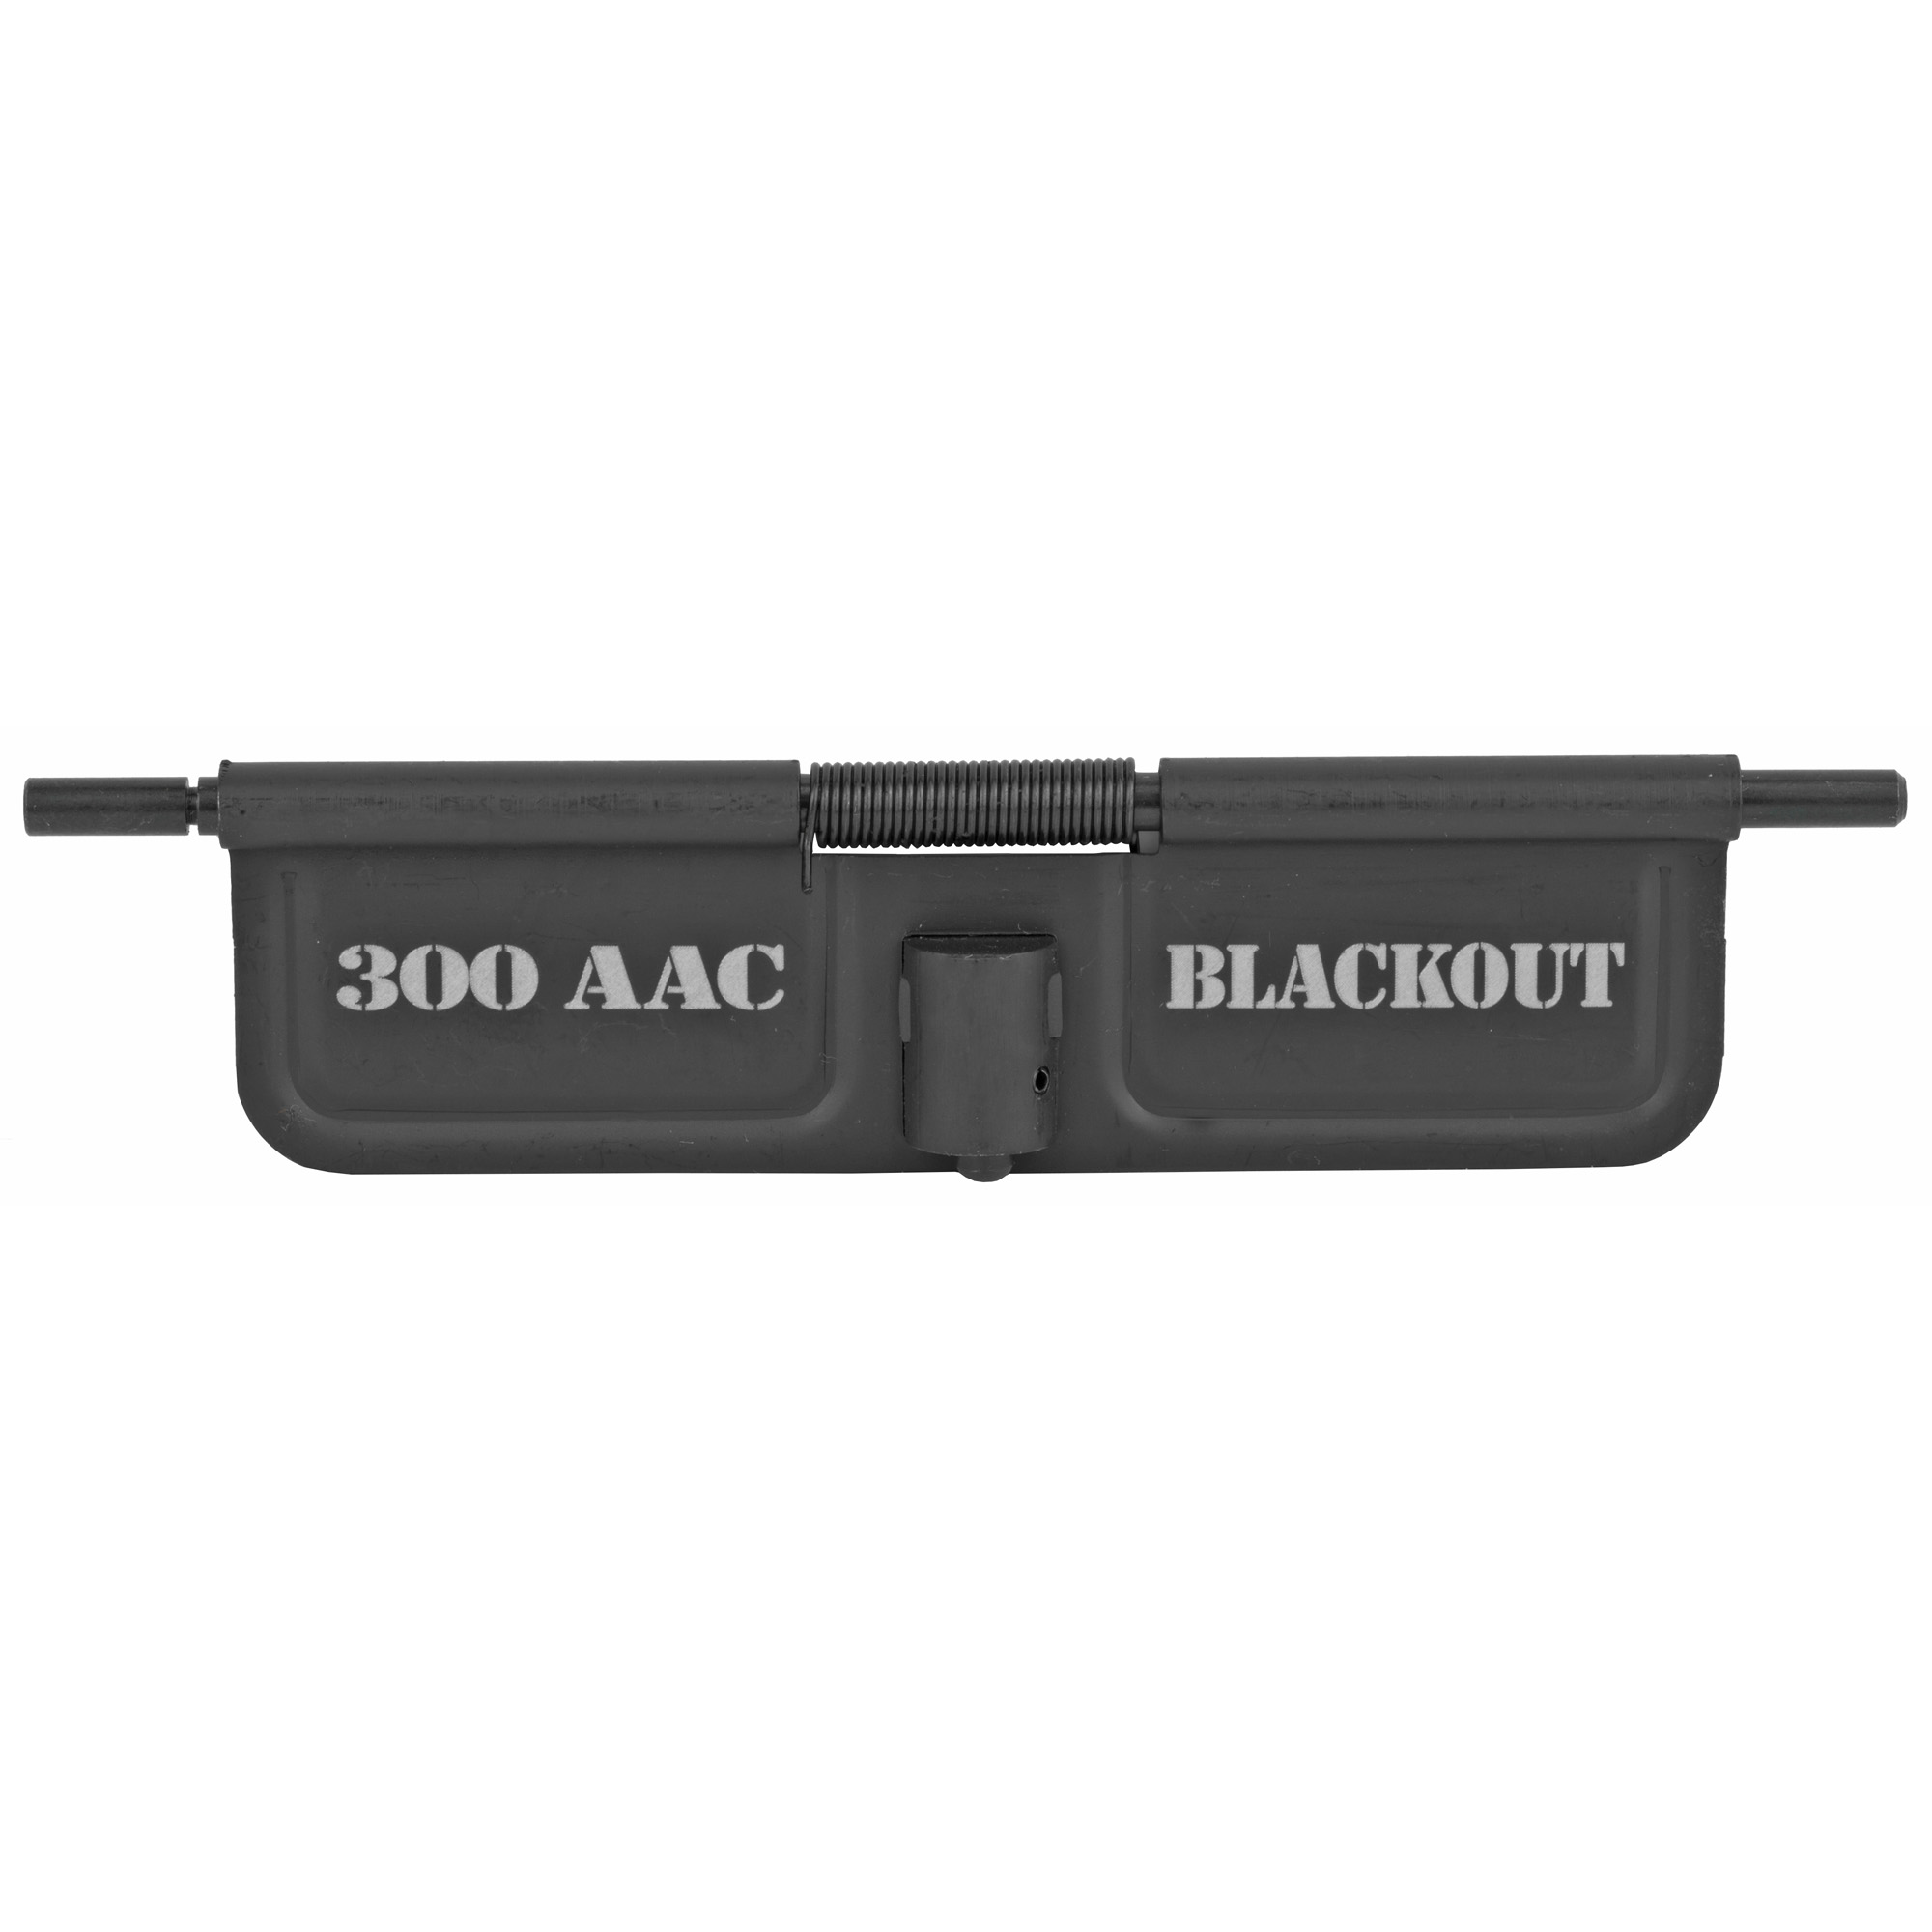 Bastion Gear AR-15 Custom Laser Engraved Ejection Port Door Dust Cover 300 AAC Blackout